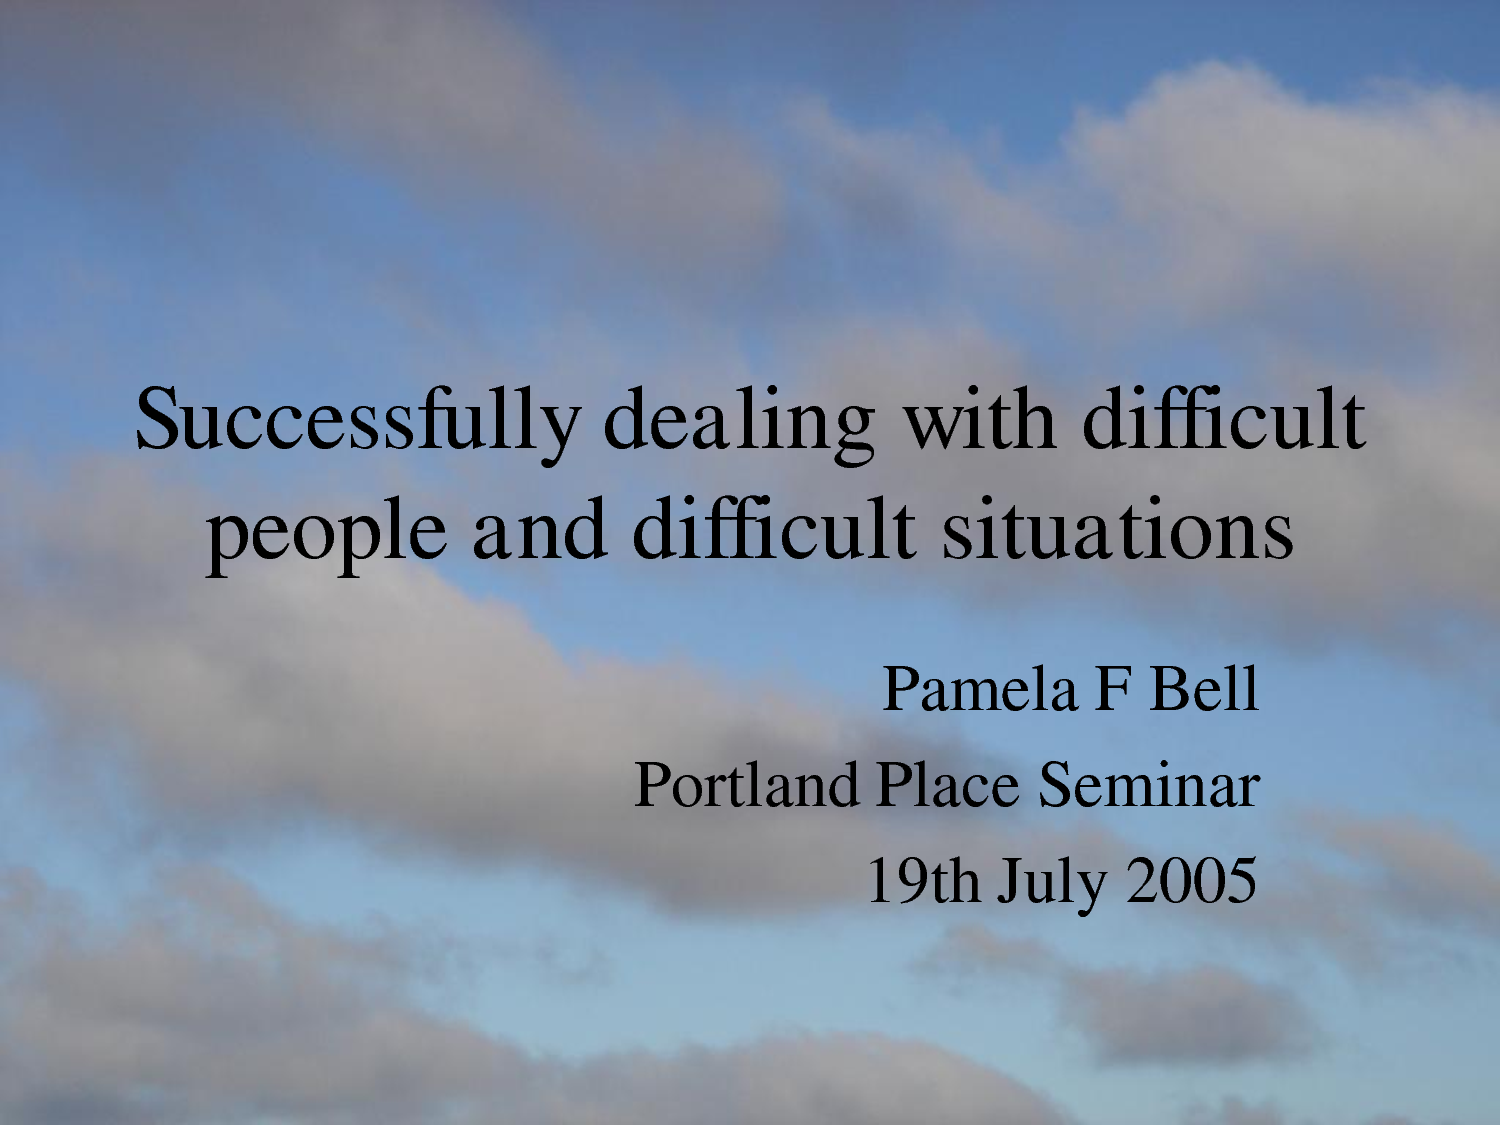 quotes about dealing difficult people quotesgram successfully dealing difficult people and difficult situations follow us